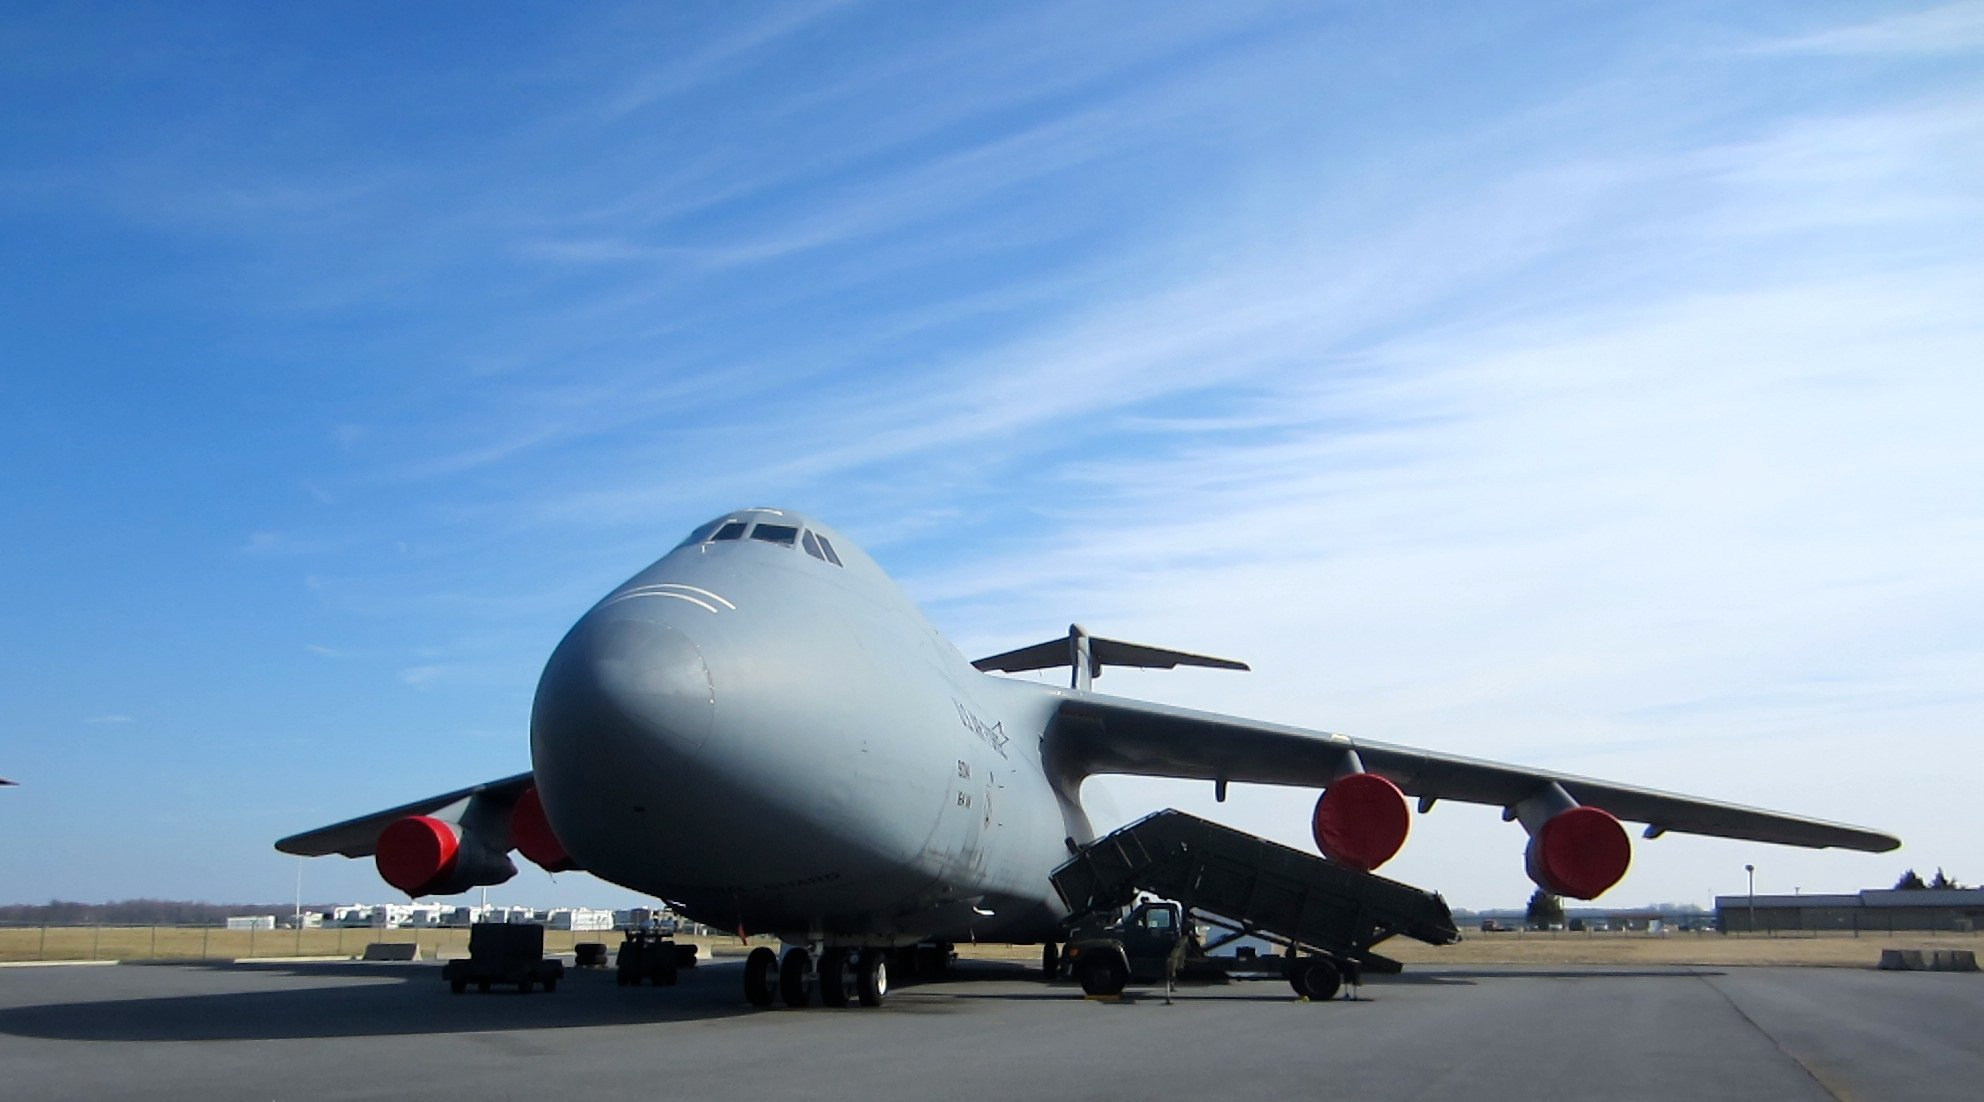 The Biggest, Baddest Cargo Plane in the History of the World